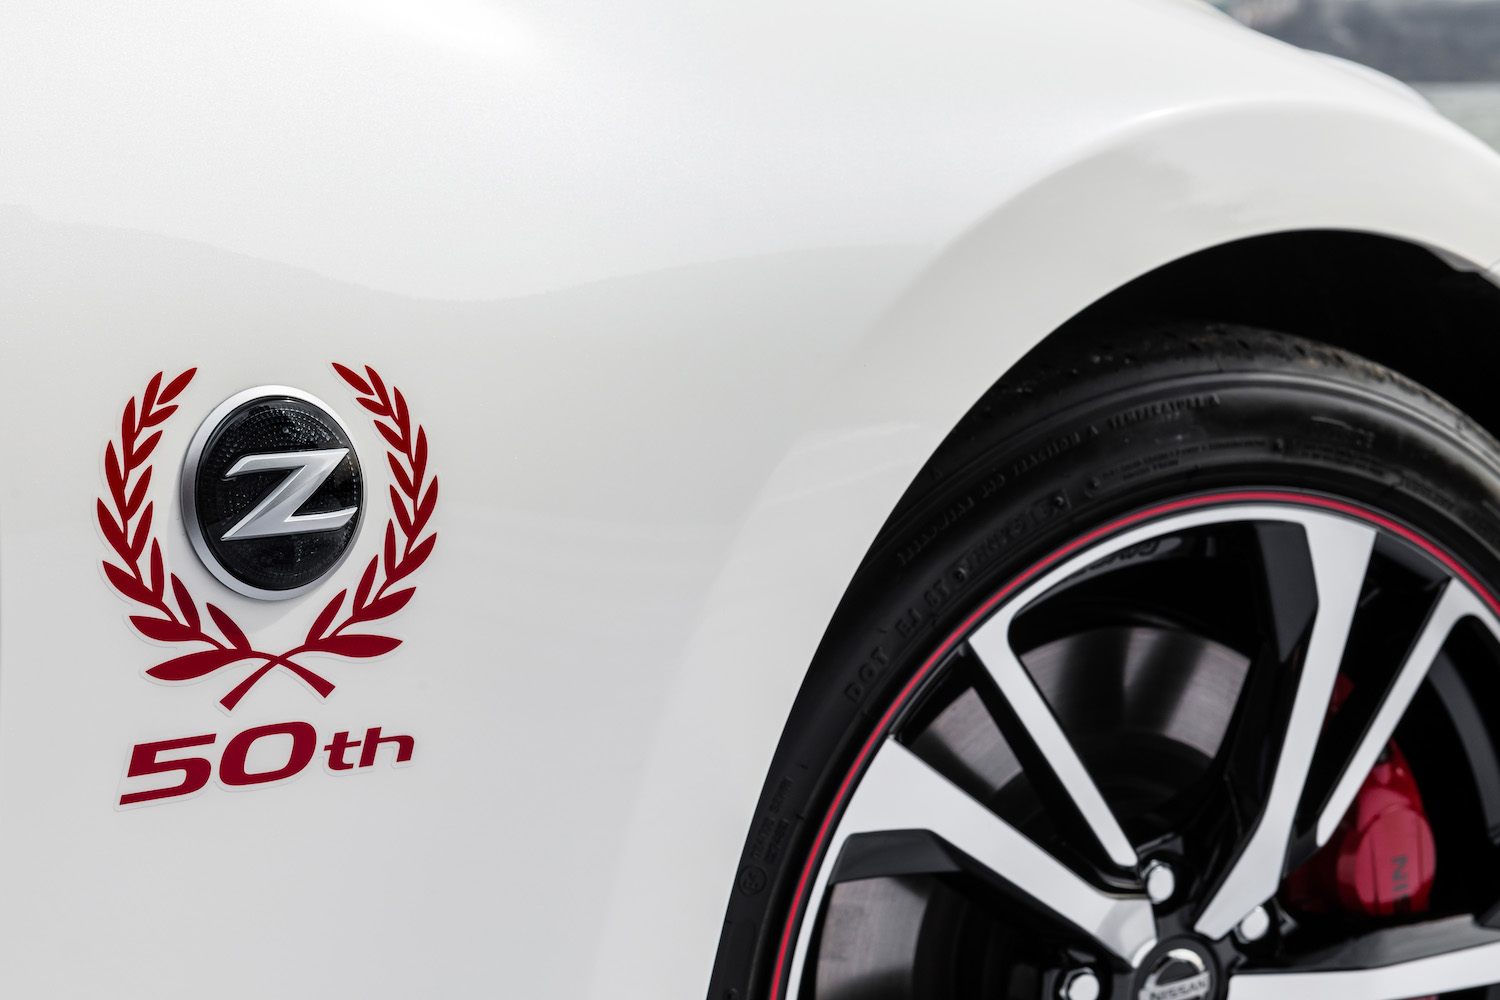 nissan z 50th anniversary logo badge on front quarter panel